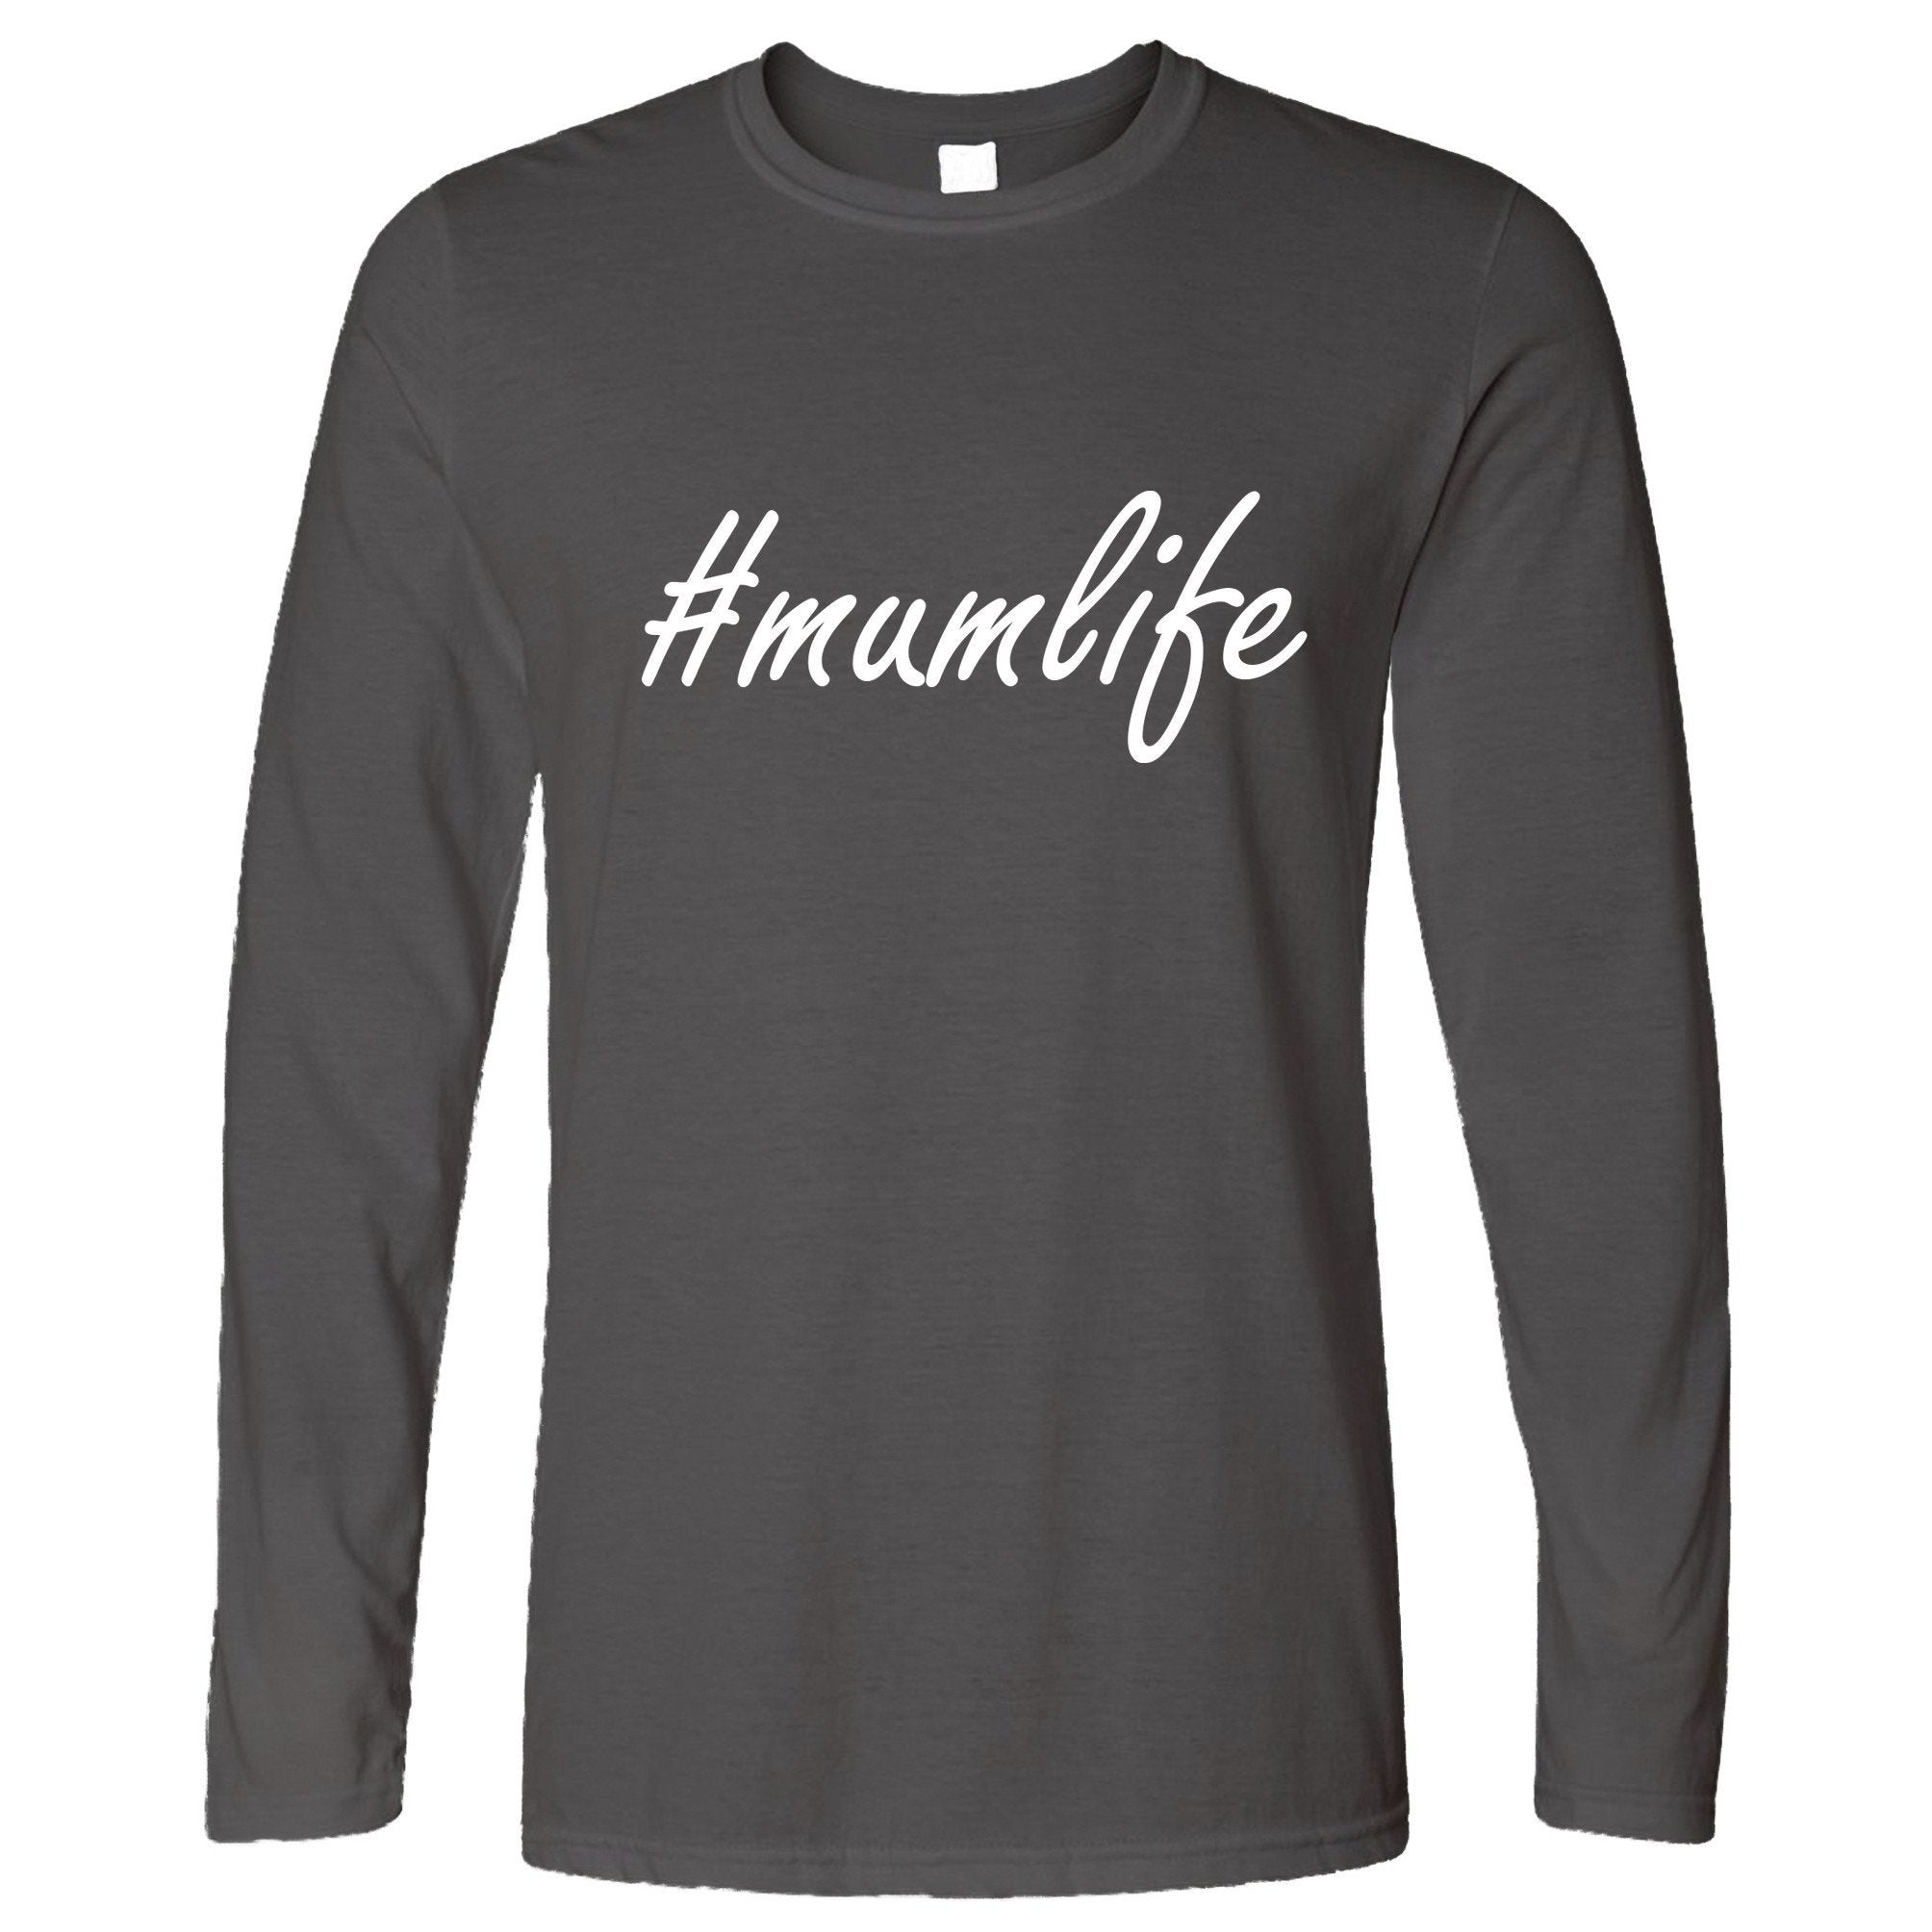 Mother's Day Long Sleeve Hashtag #mumlife Slogan T-Shirt